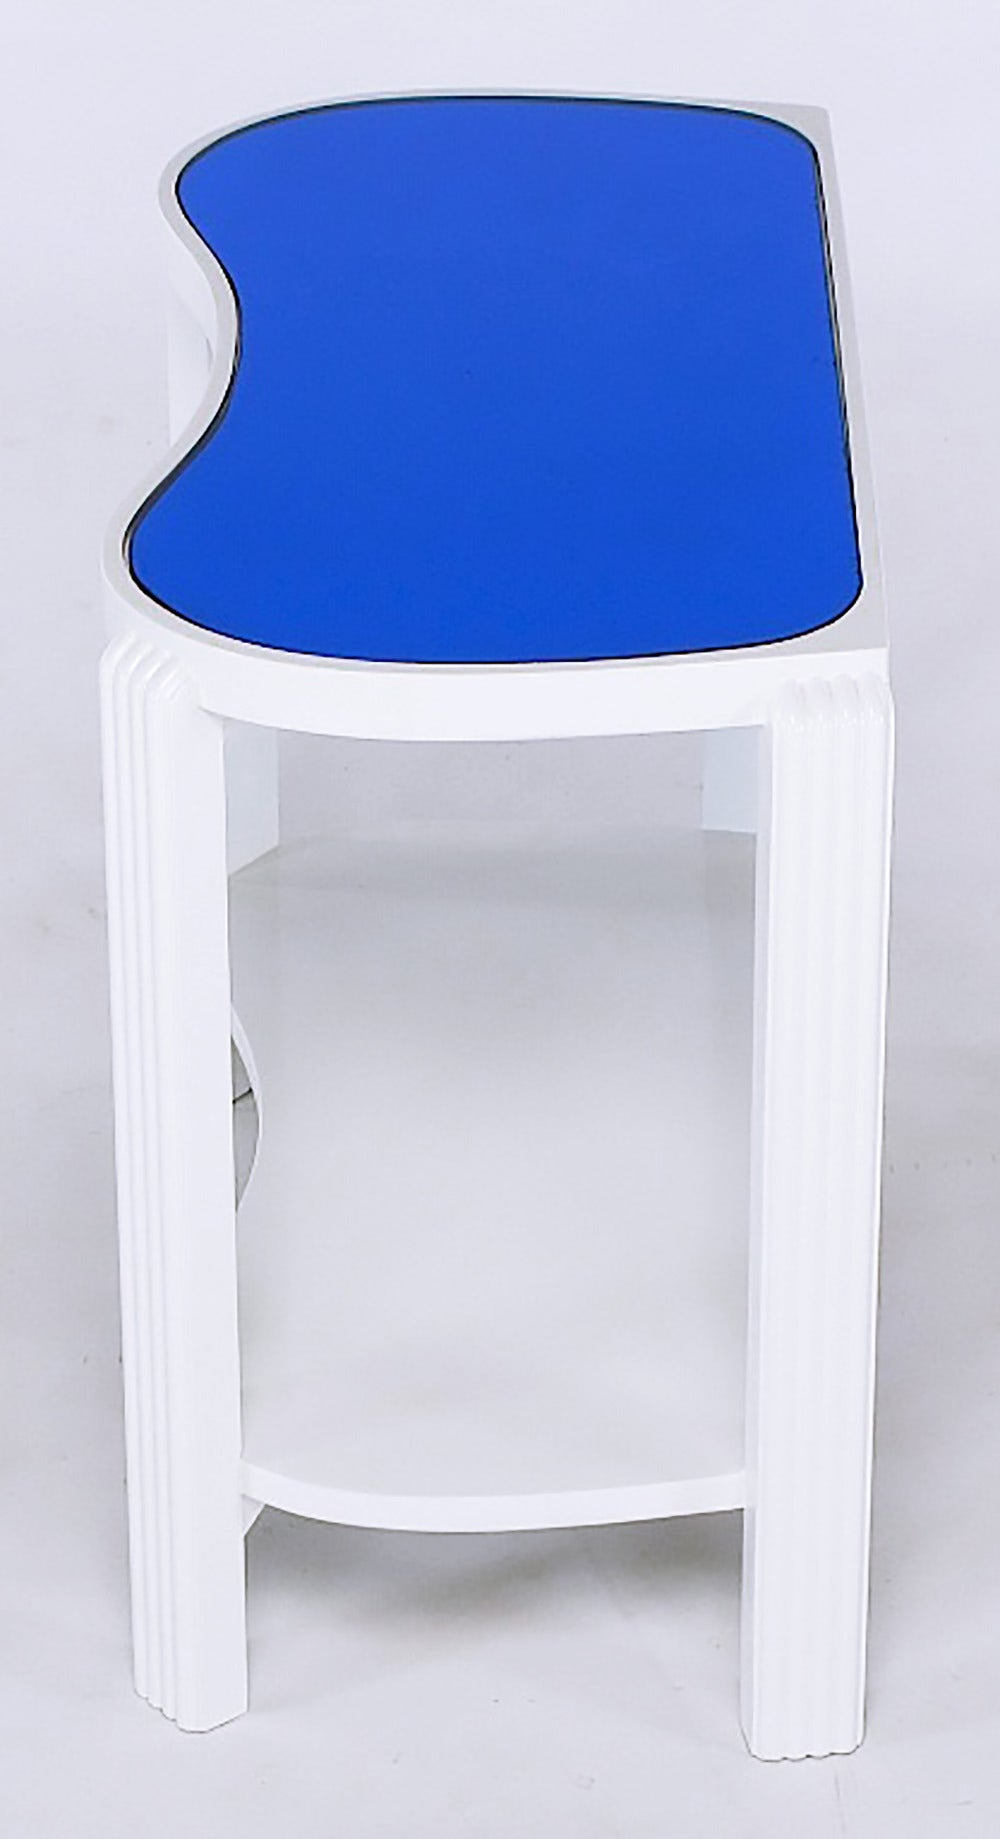 Mid-20th Century Pair of 1930s Art Deco White Lacquer and Blue Mirror Side Tables For Sale